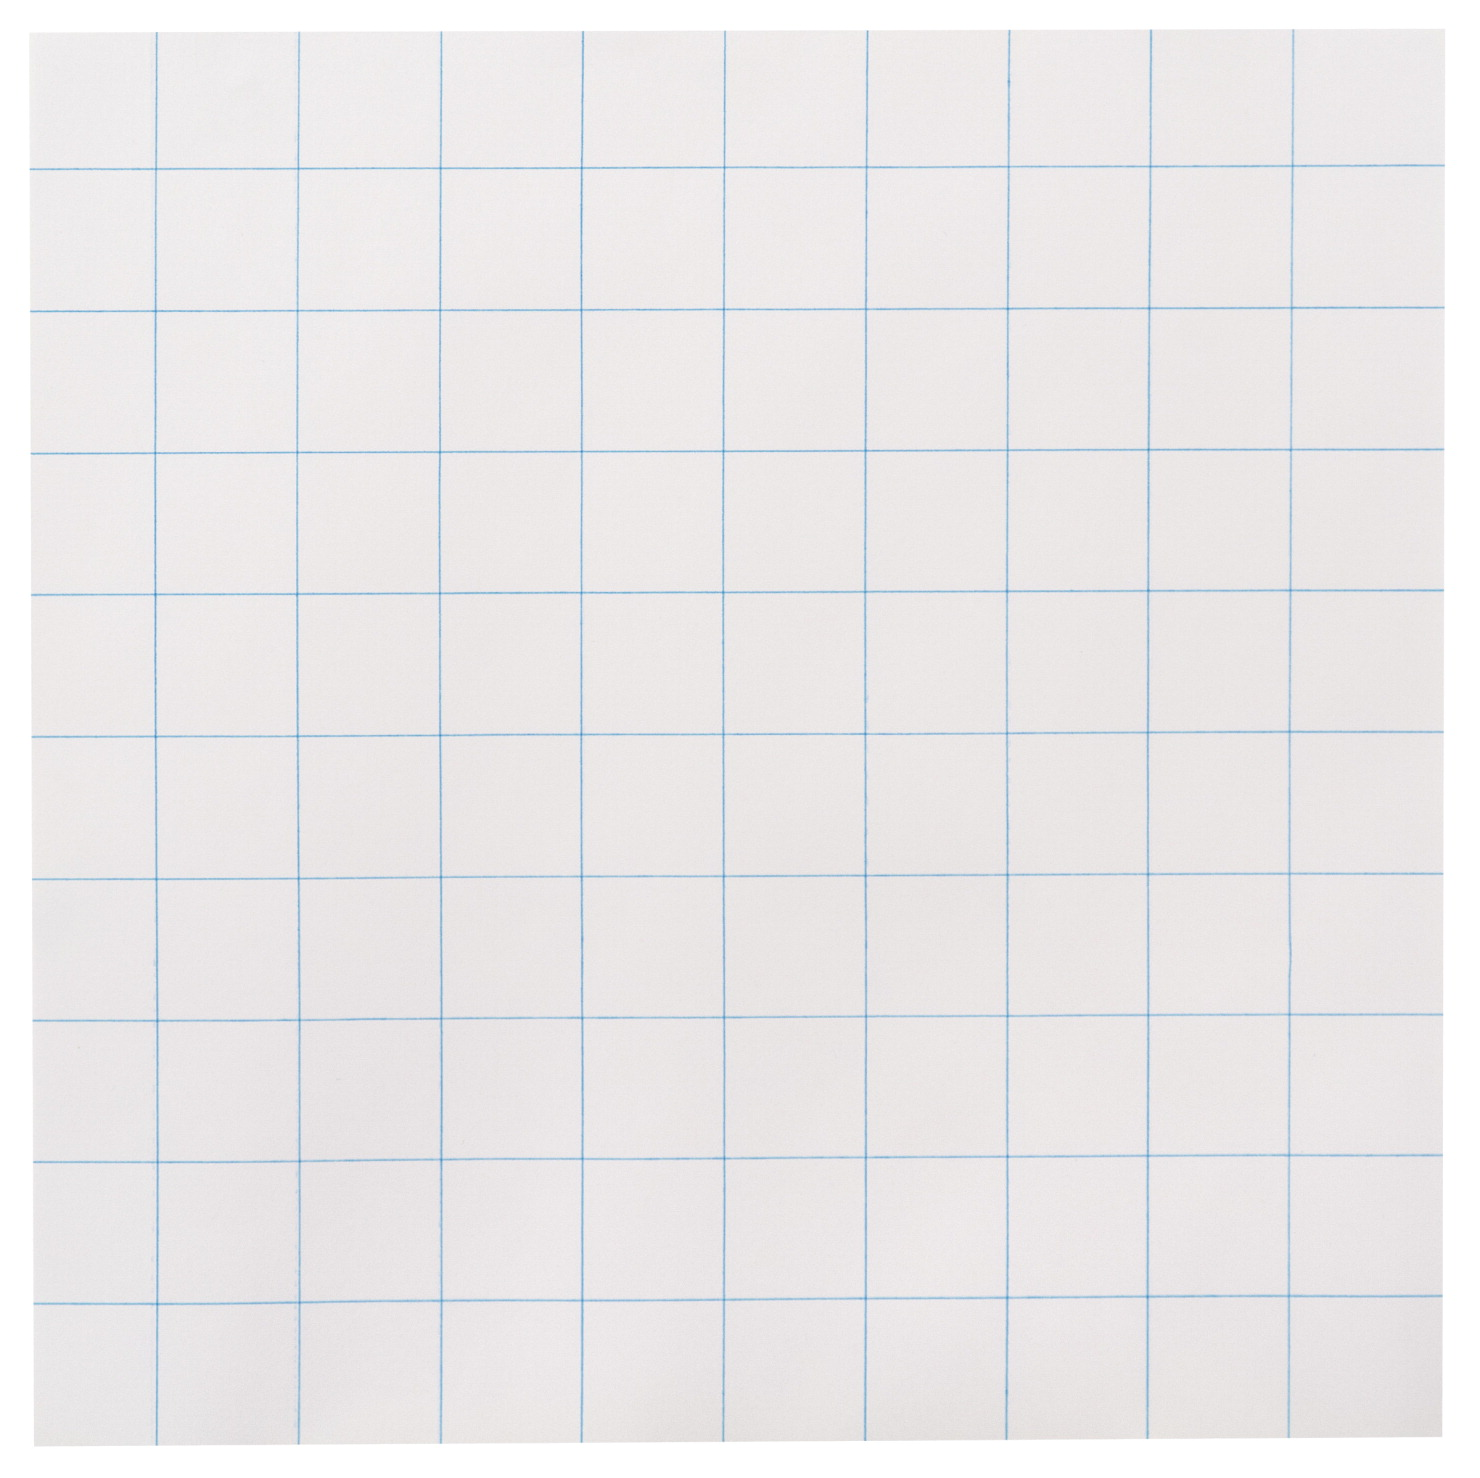 worksheet Graph Paper Images school smart graph paper frey scientific cpo science 3 hole punched 10 x inches white